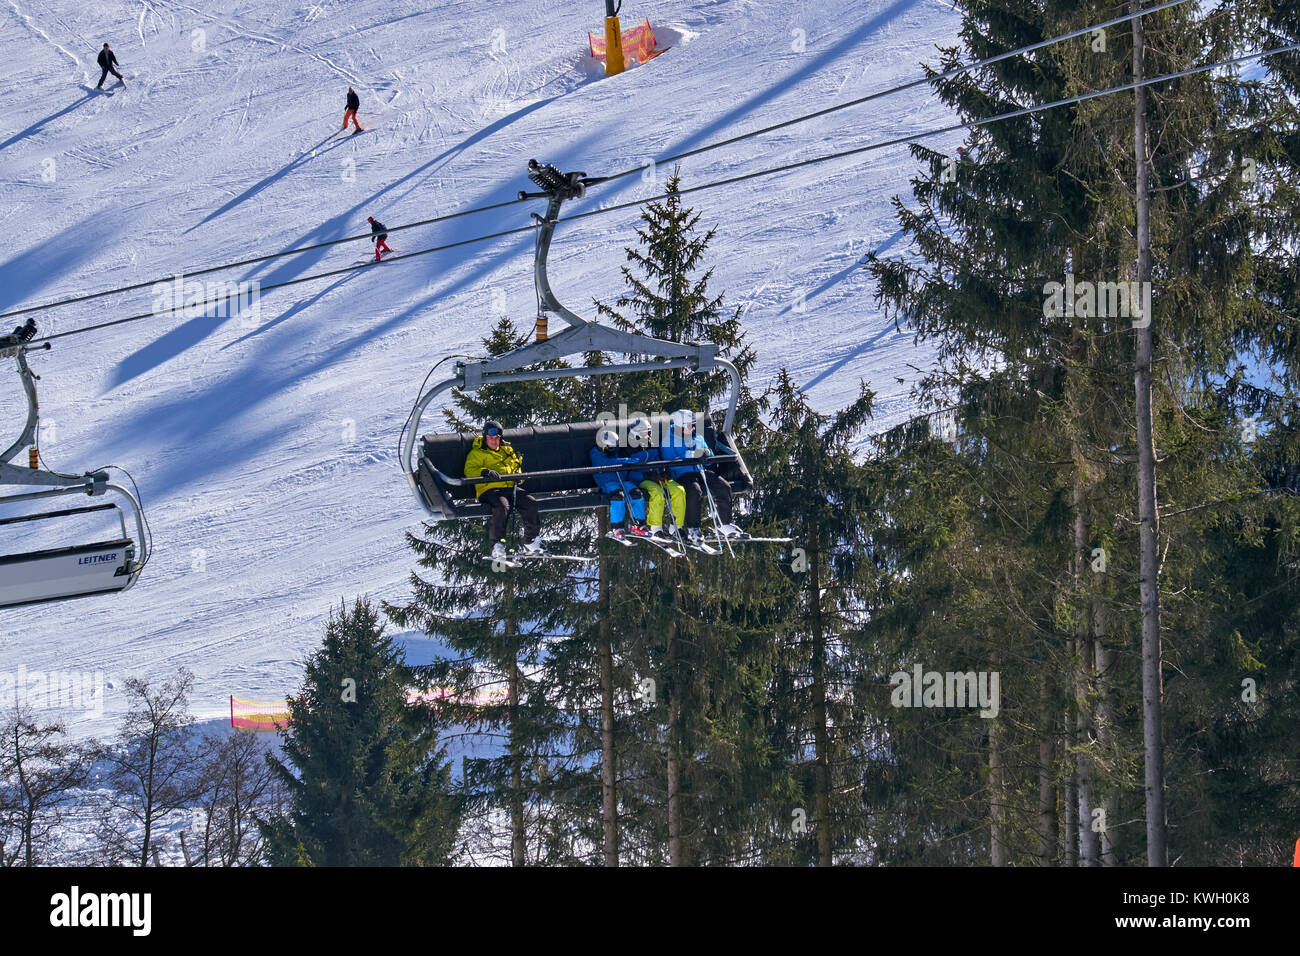 WINTERBERG, GERMANY - FEBRUARY 15, 2017: People sitting in an eight seater chairlift at Ski Carousel Winterberg - Stock Image